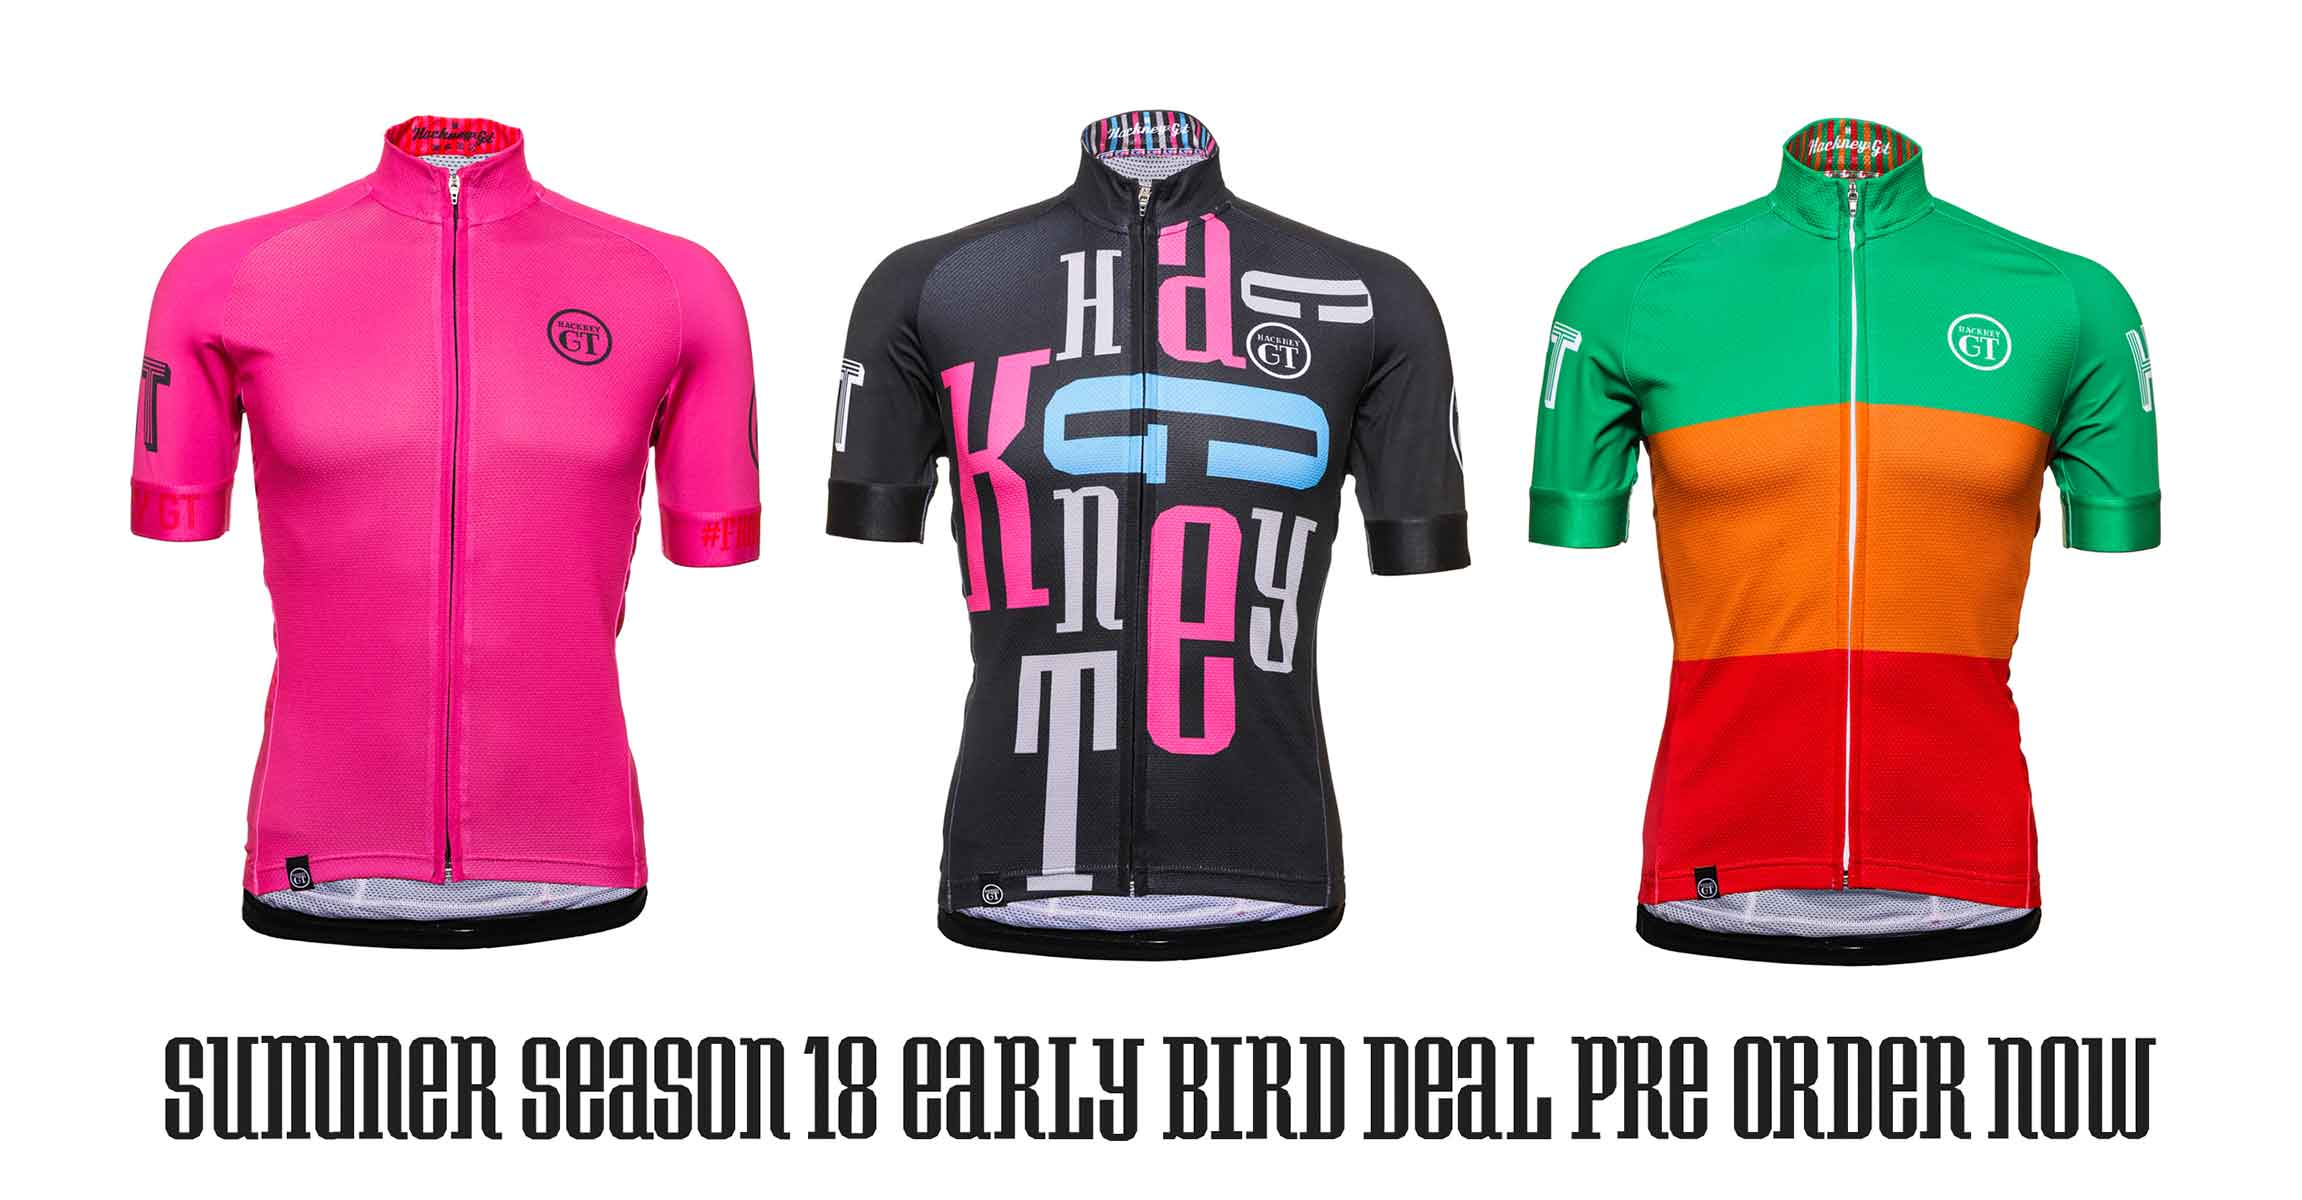 Hackney GT new 2018 jersey range and early bird offer